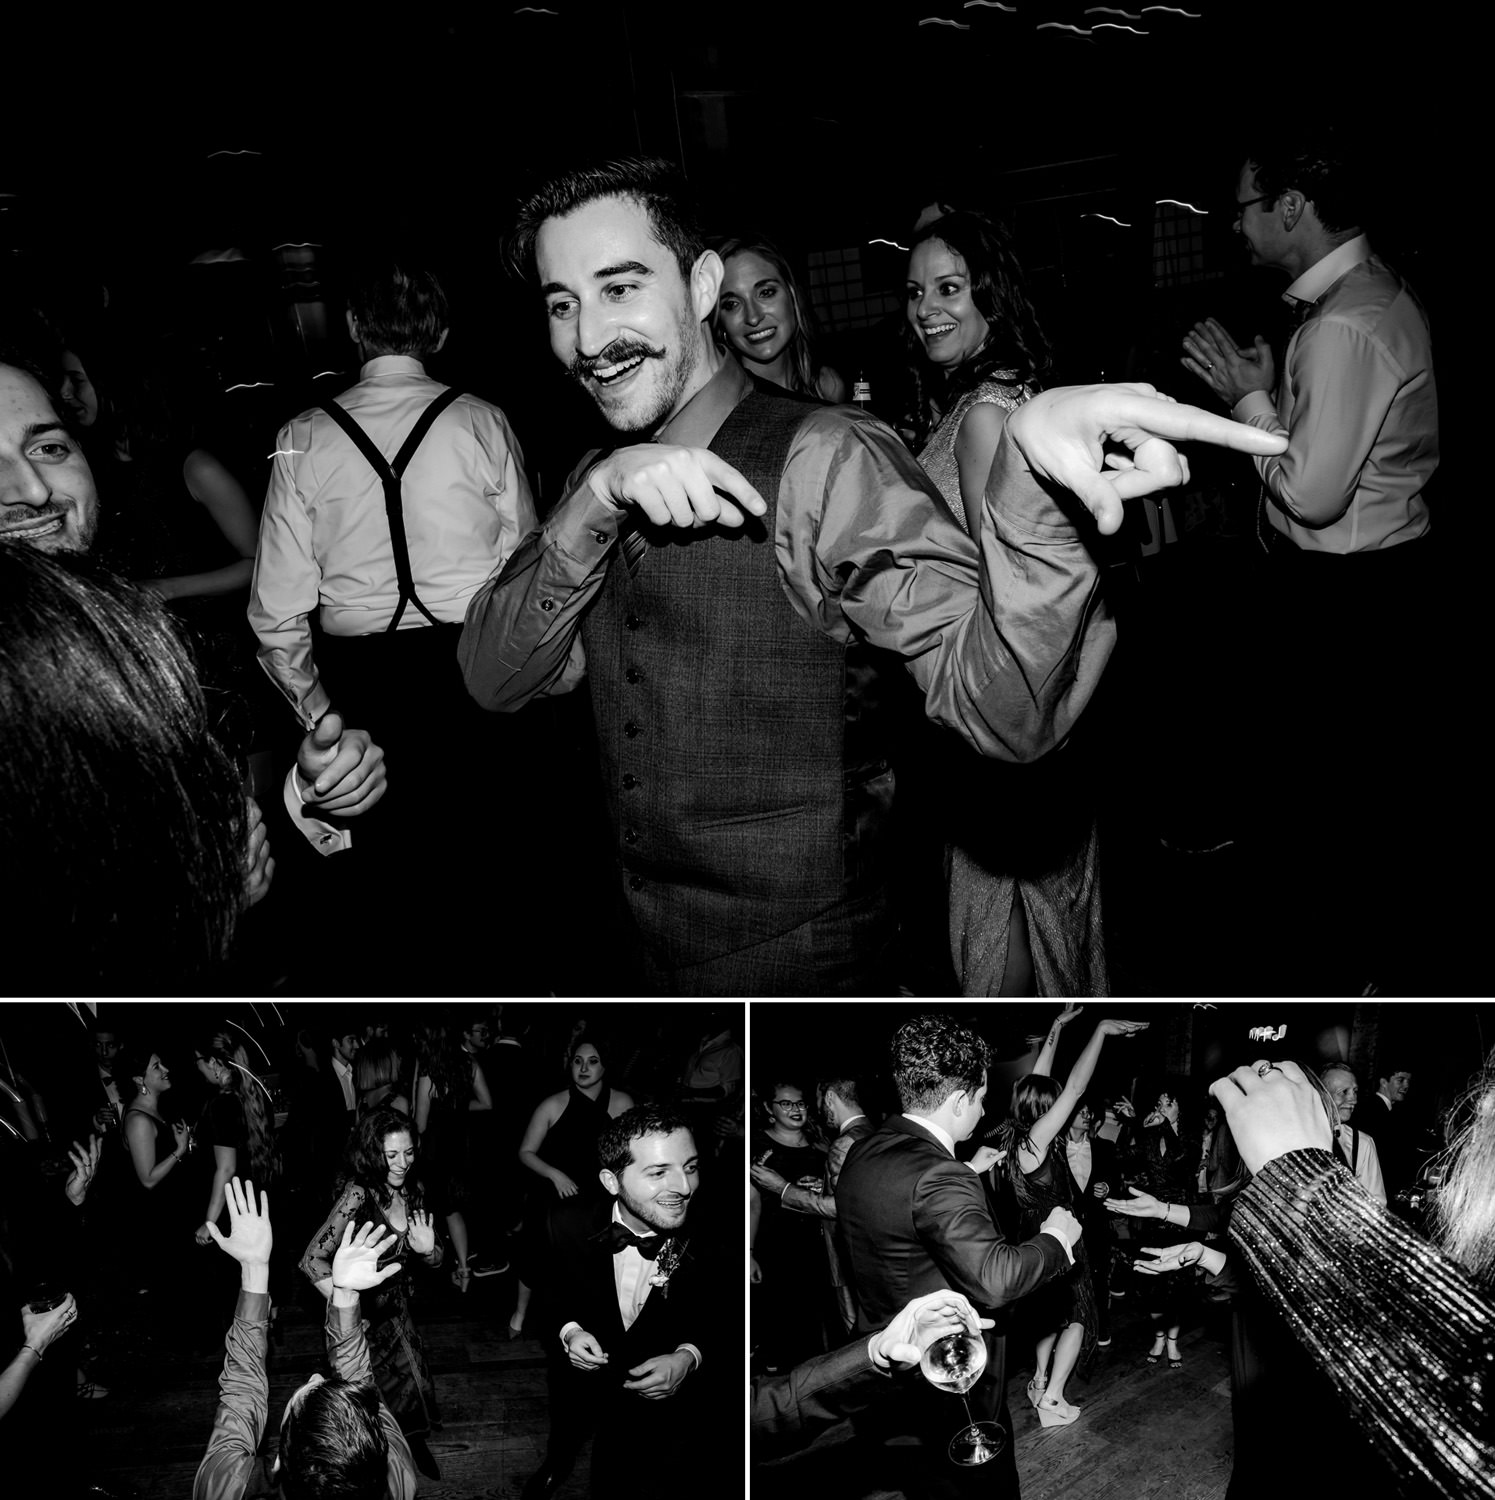 new york city winery wedding- crazy party on the dancefloor